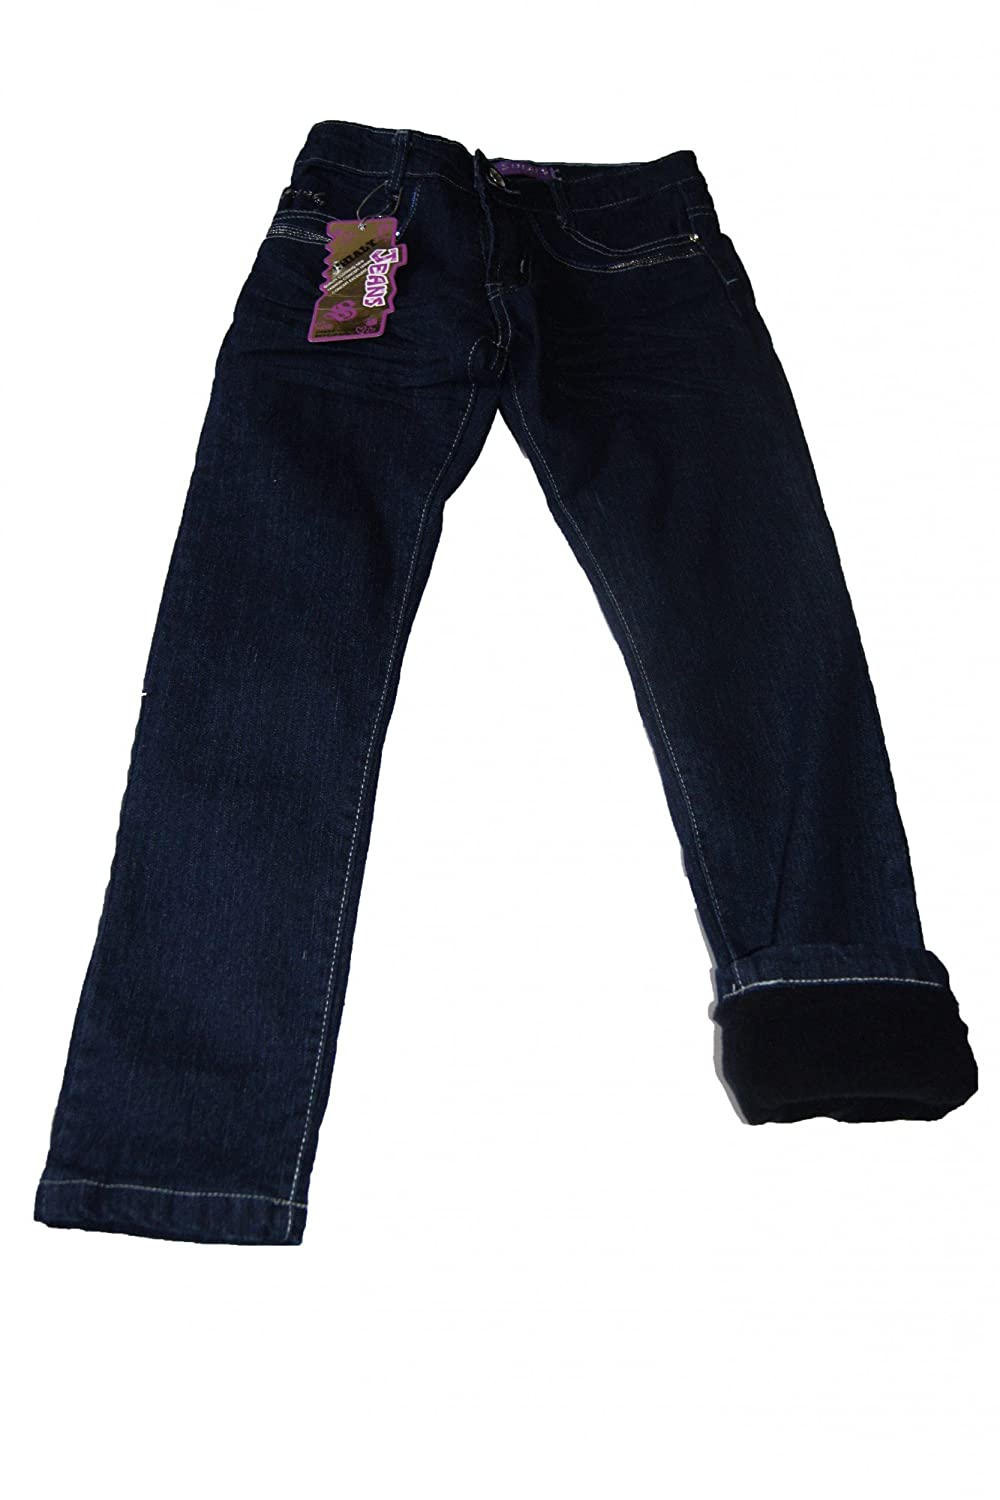 Thermojeans Thermohose Jeans Babyjeans